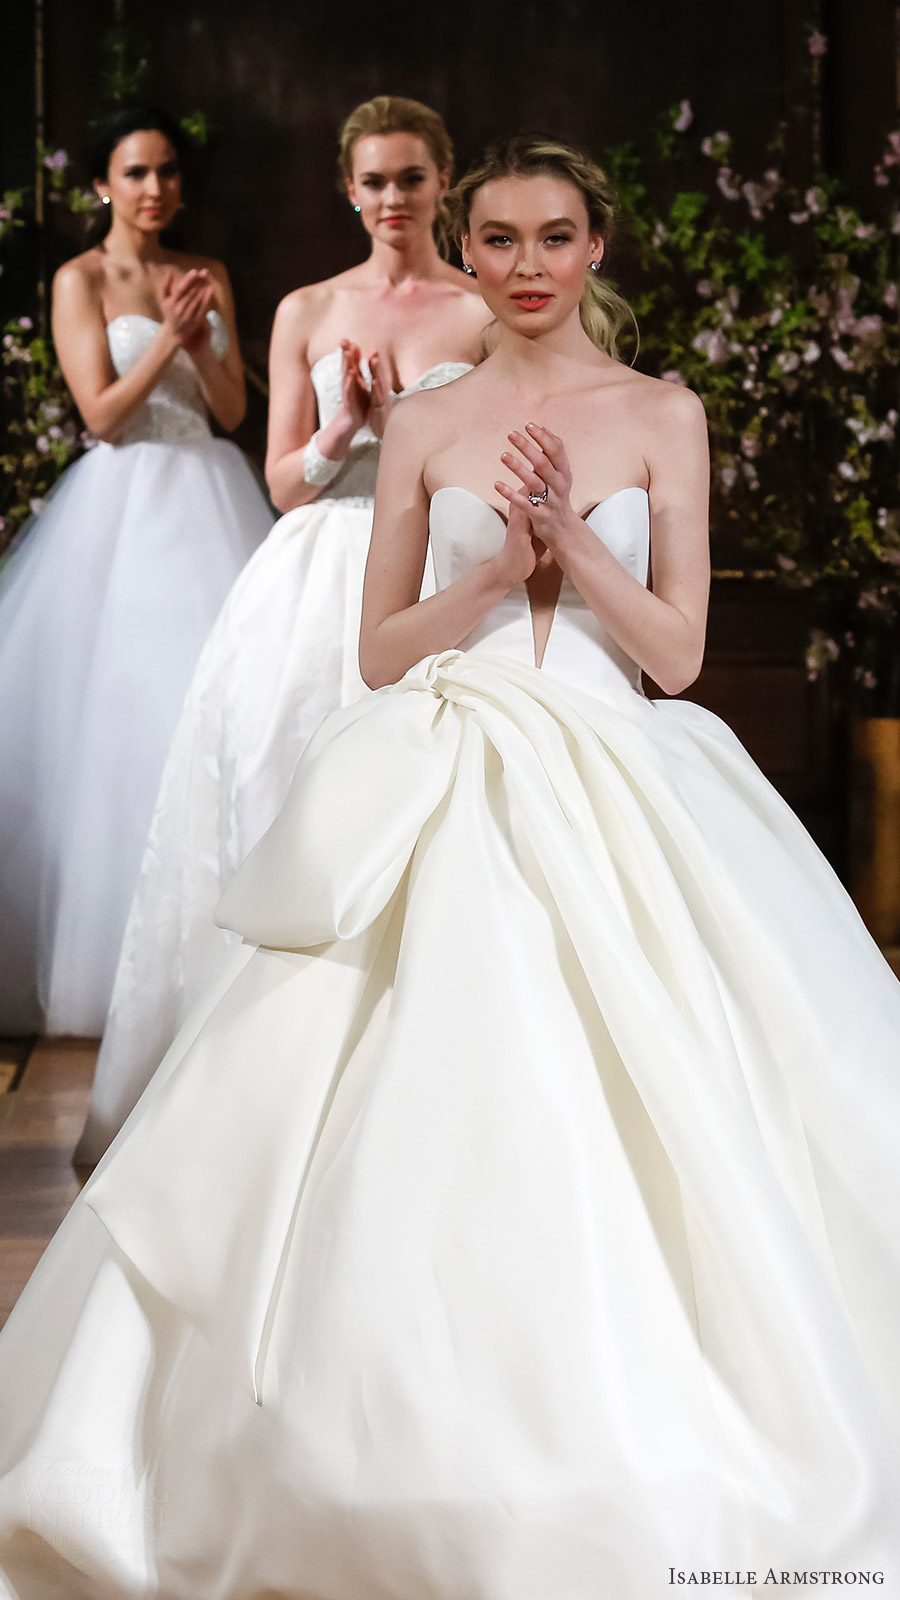 isabelle armstrong bridal spring 2017 runway finale